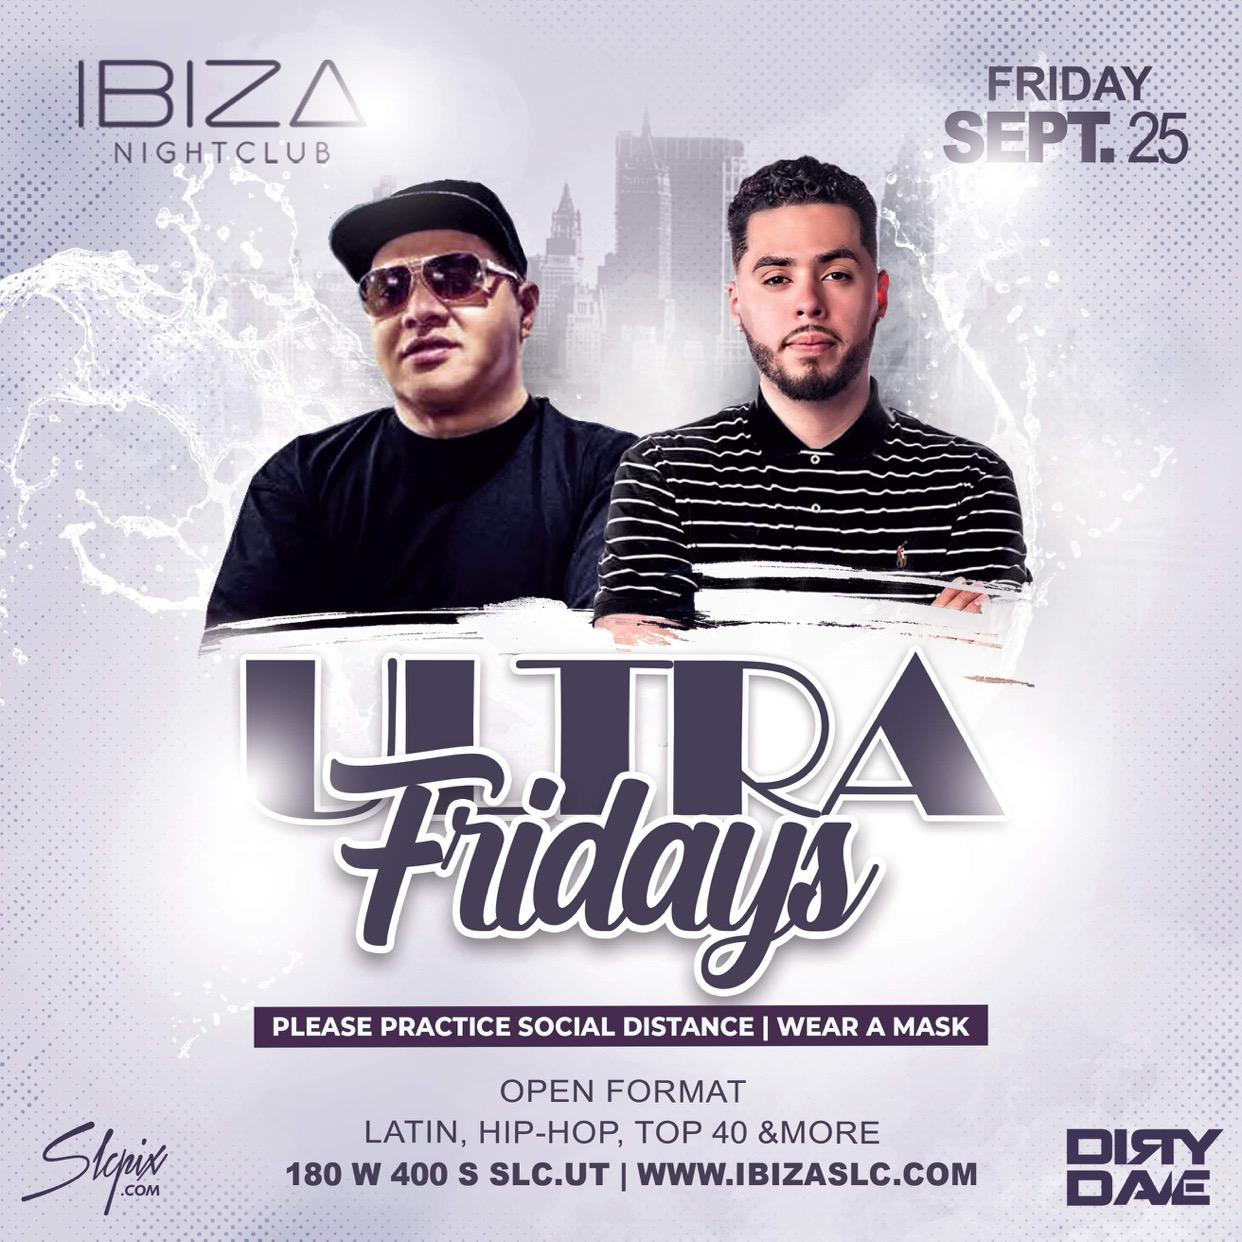 Ultra Fridays - Dirty Dave and Handsome